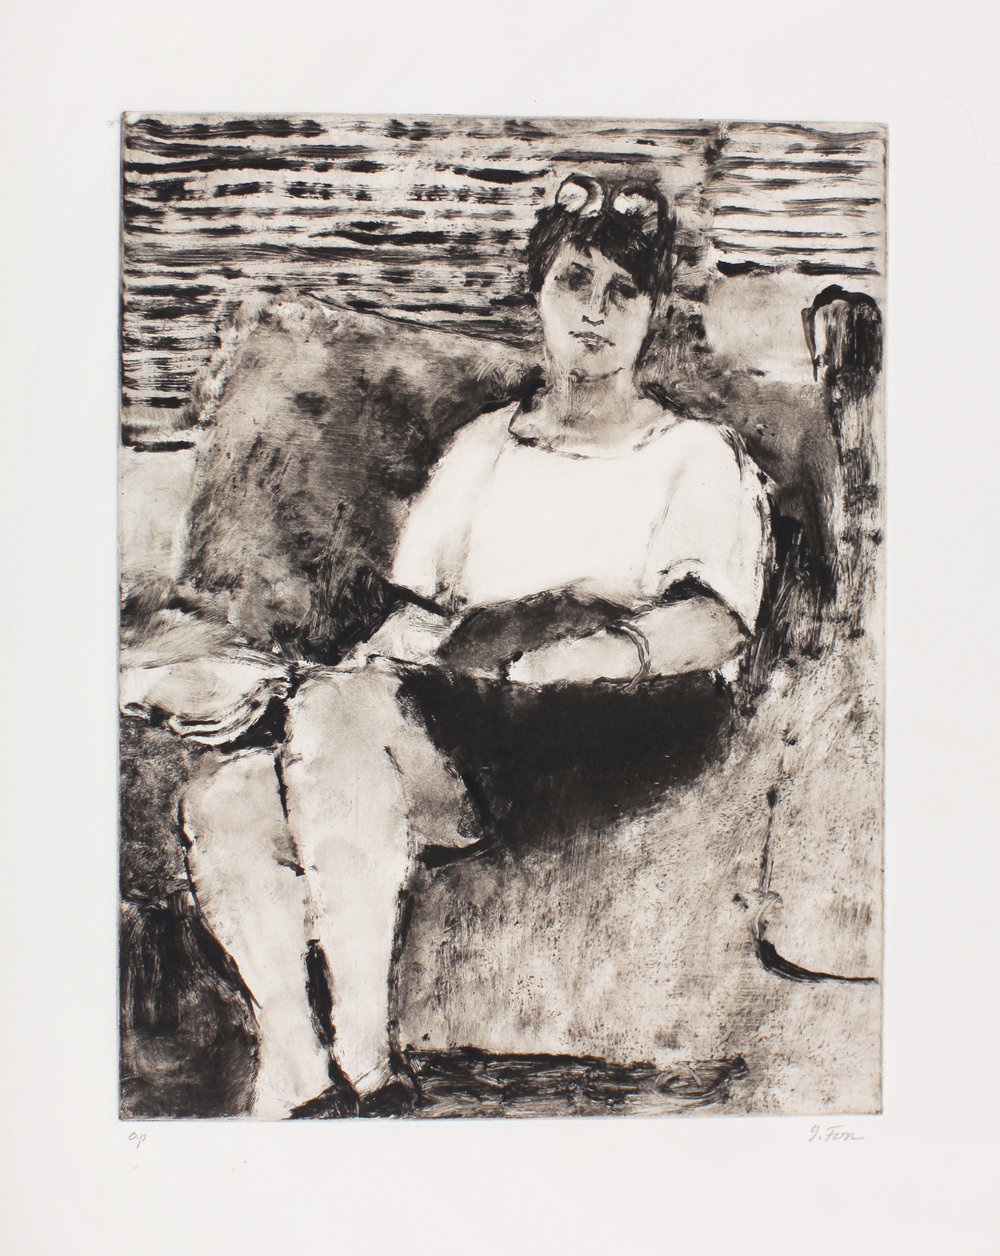 1990_Sandra_Sitting_on_Couch_monotype_on_paper_Paper_18x13in_image_12X9in_WPF433.jpg